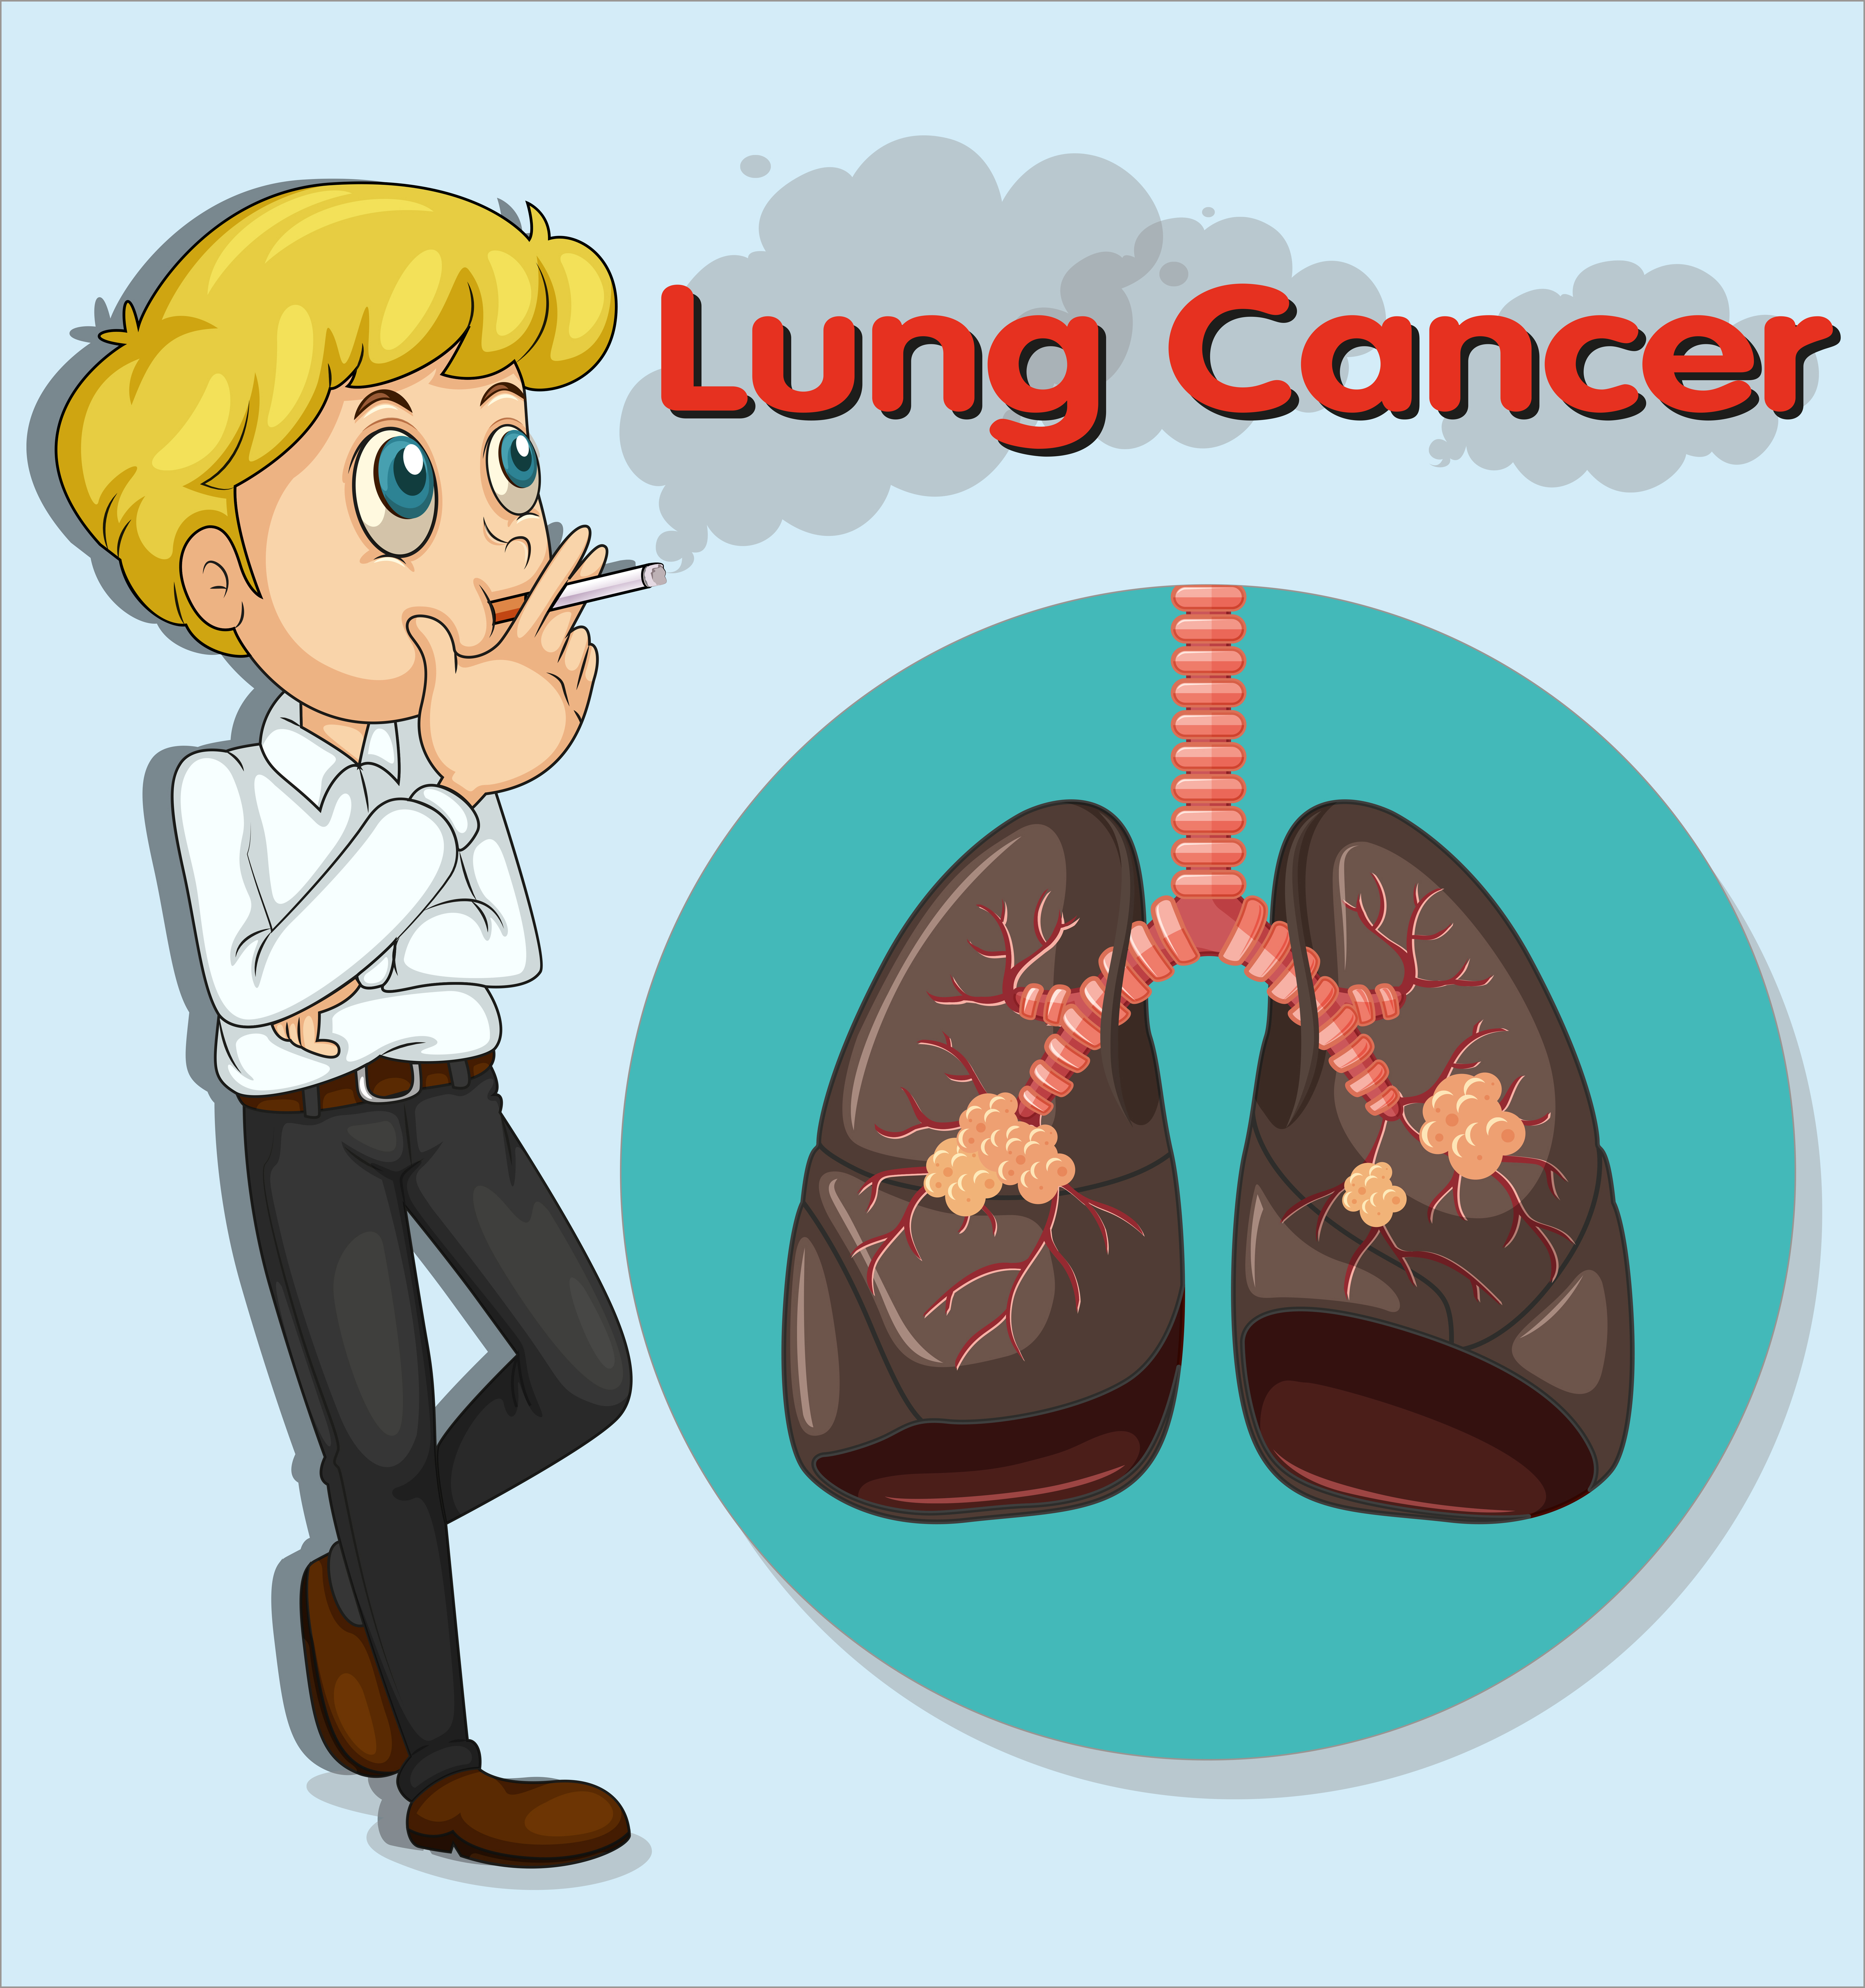 Lungs Logo: Man Smoking And Lung Cancer 431848 Vector Art At Vecteezy